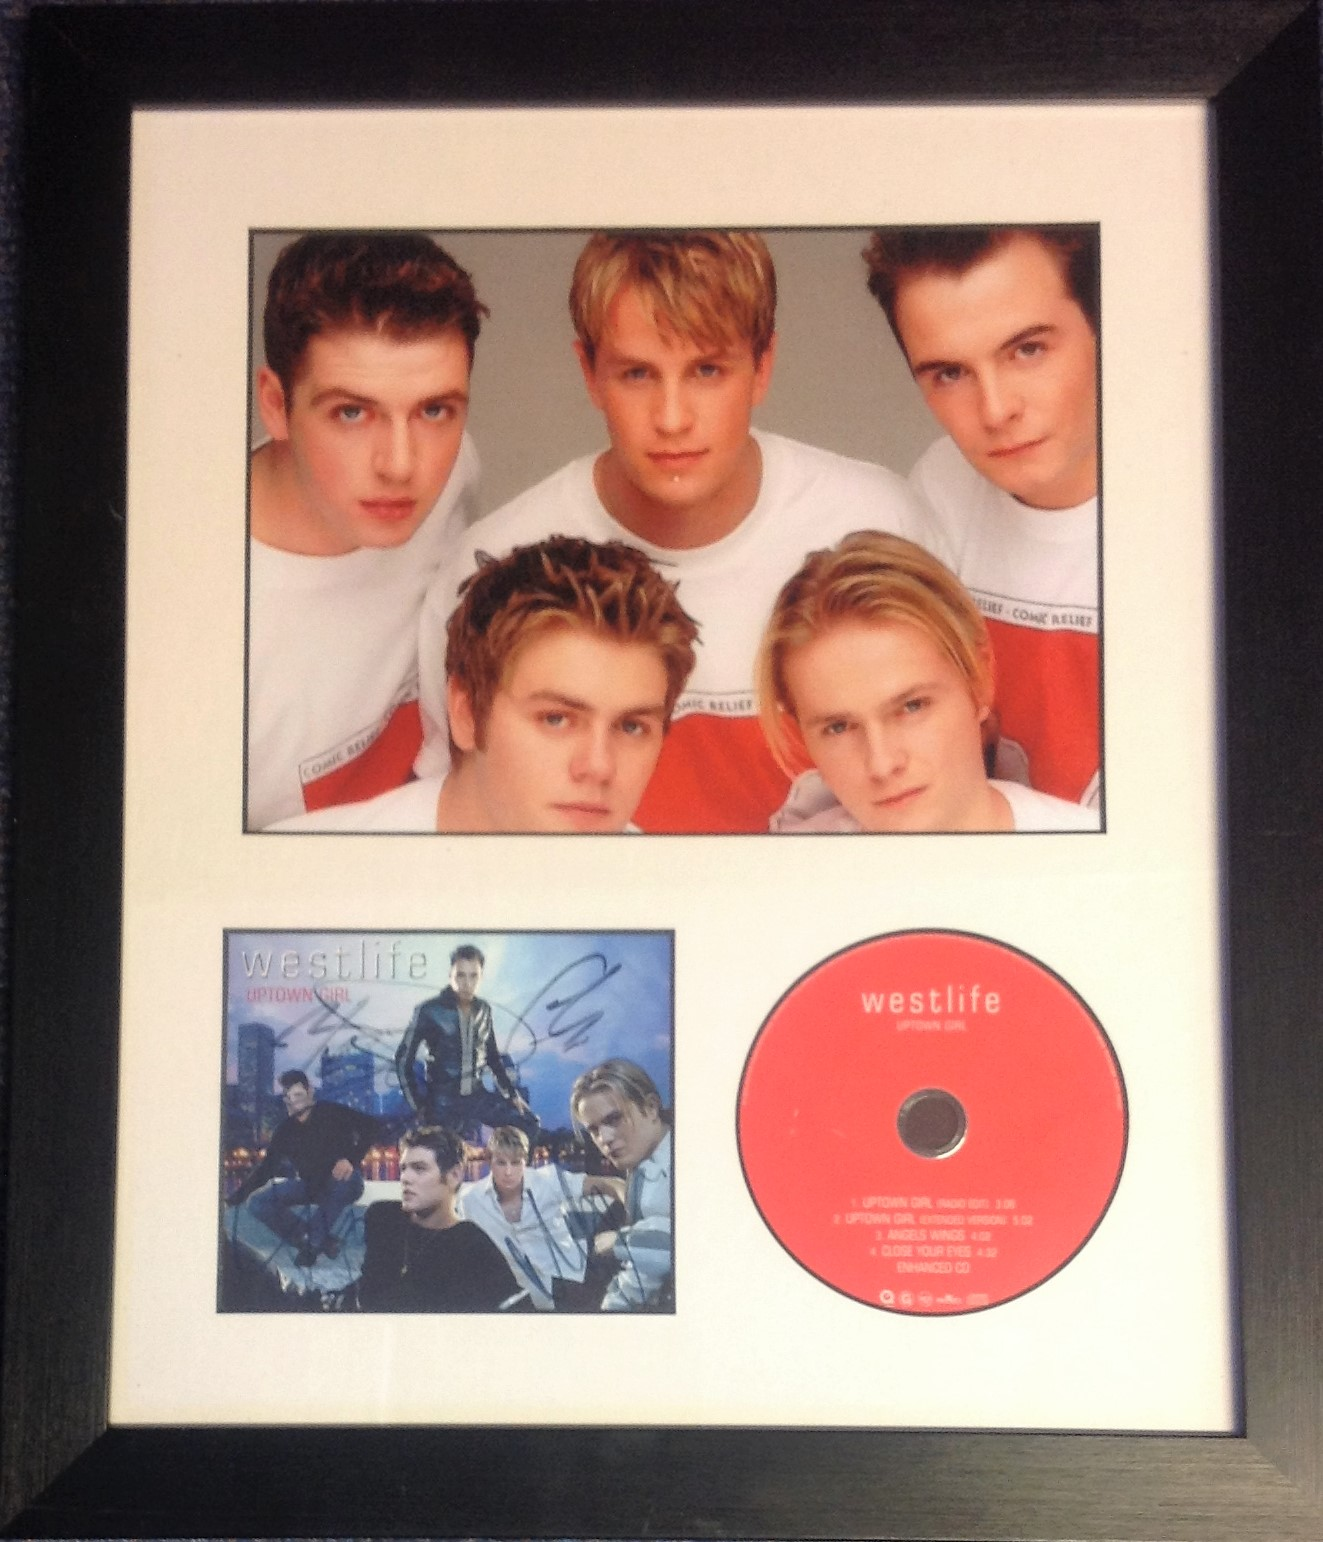 Lot 43 - Westlife 18x15 overall framed and mounted signature piece includes 10x7 colour photo, Uptown Girl CD